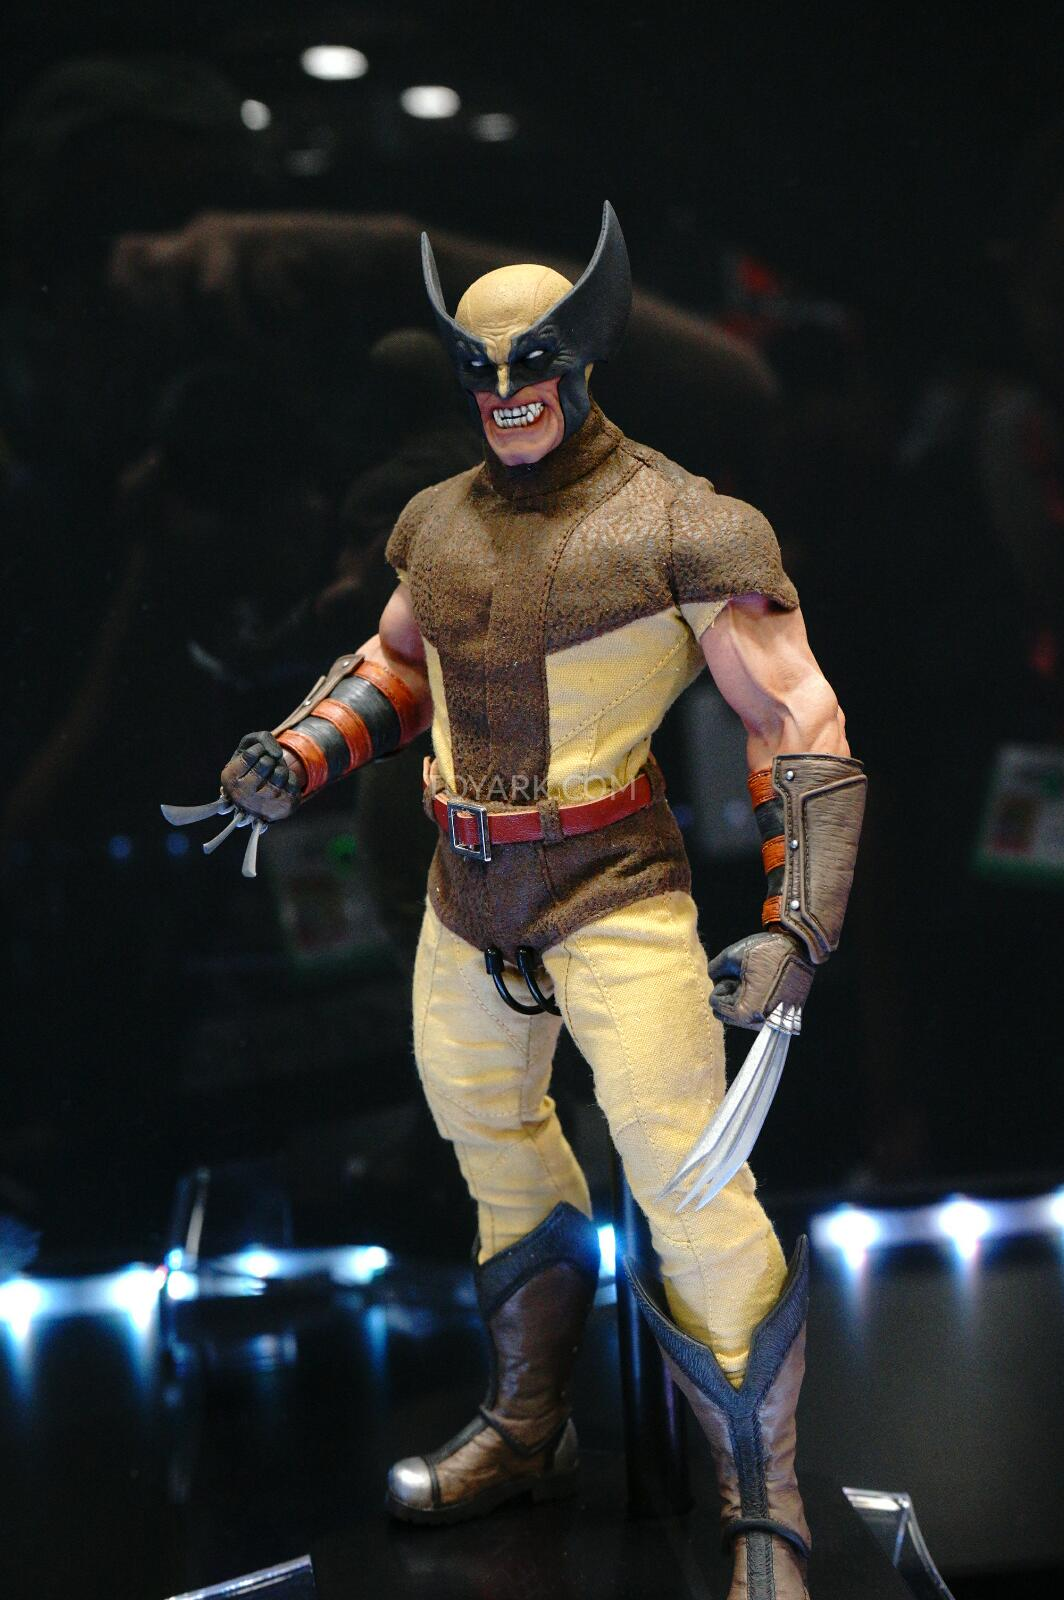 [Sideshow] Marvel Sixth Scale Collection - Wolverine DSC07551